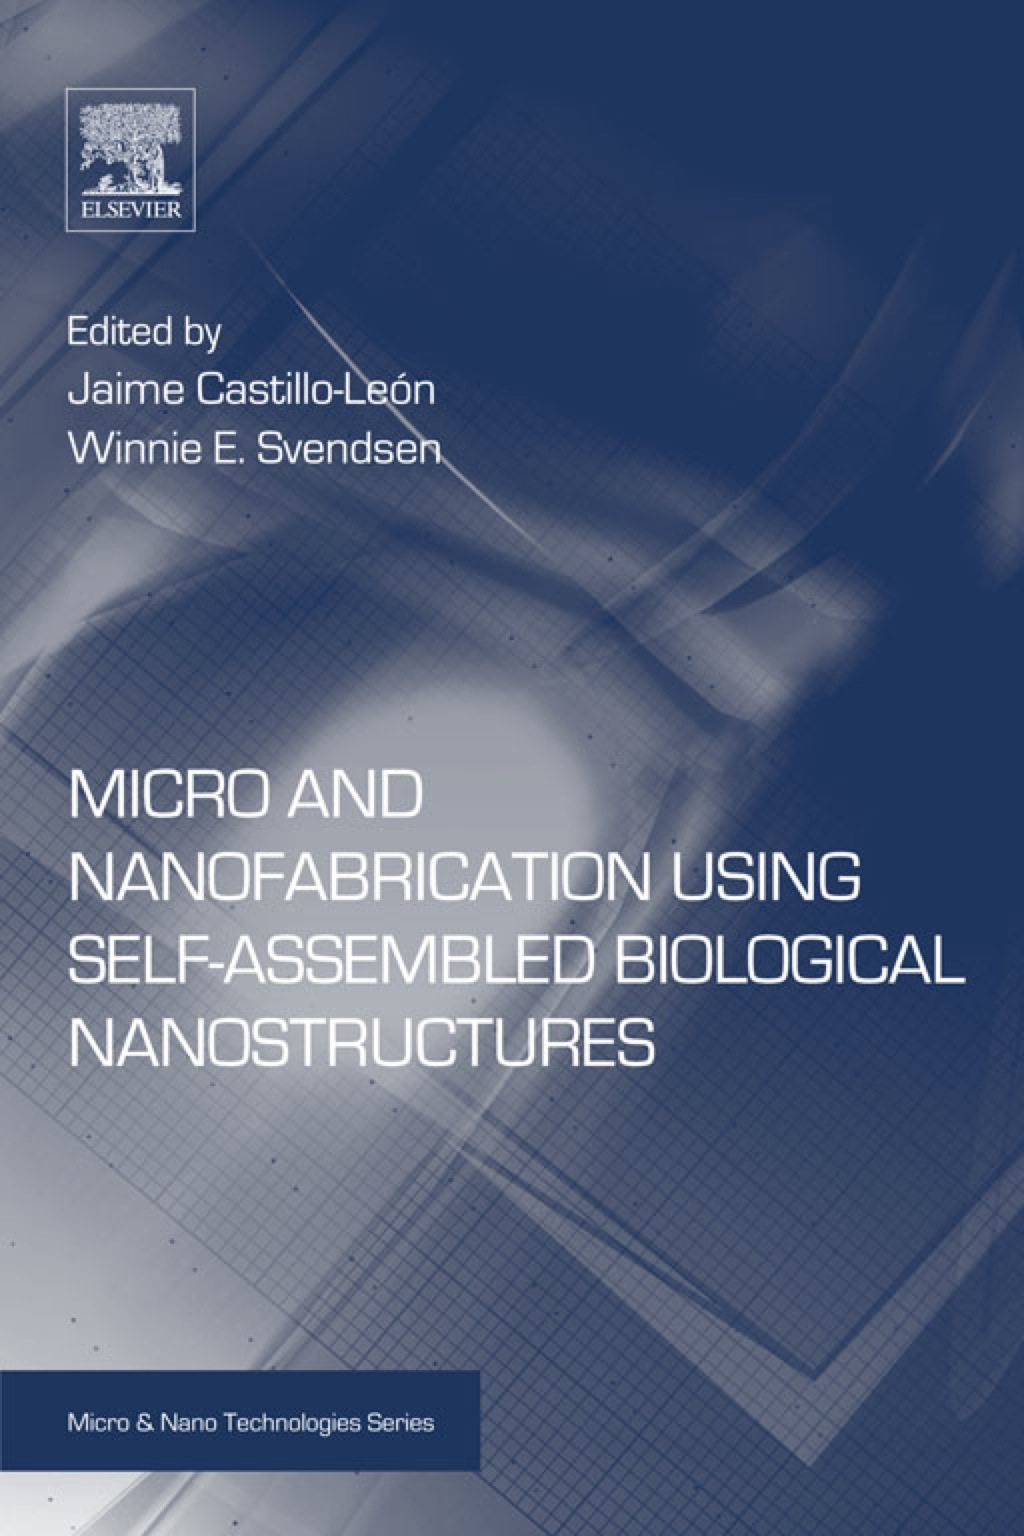 Micro and Nanofabrication Using Self-Assembled Biological Nanostructures (eBook)